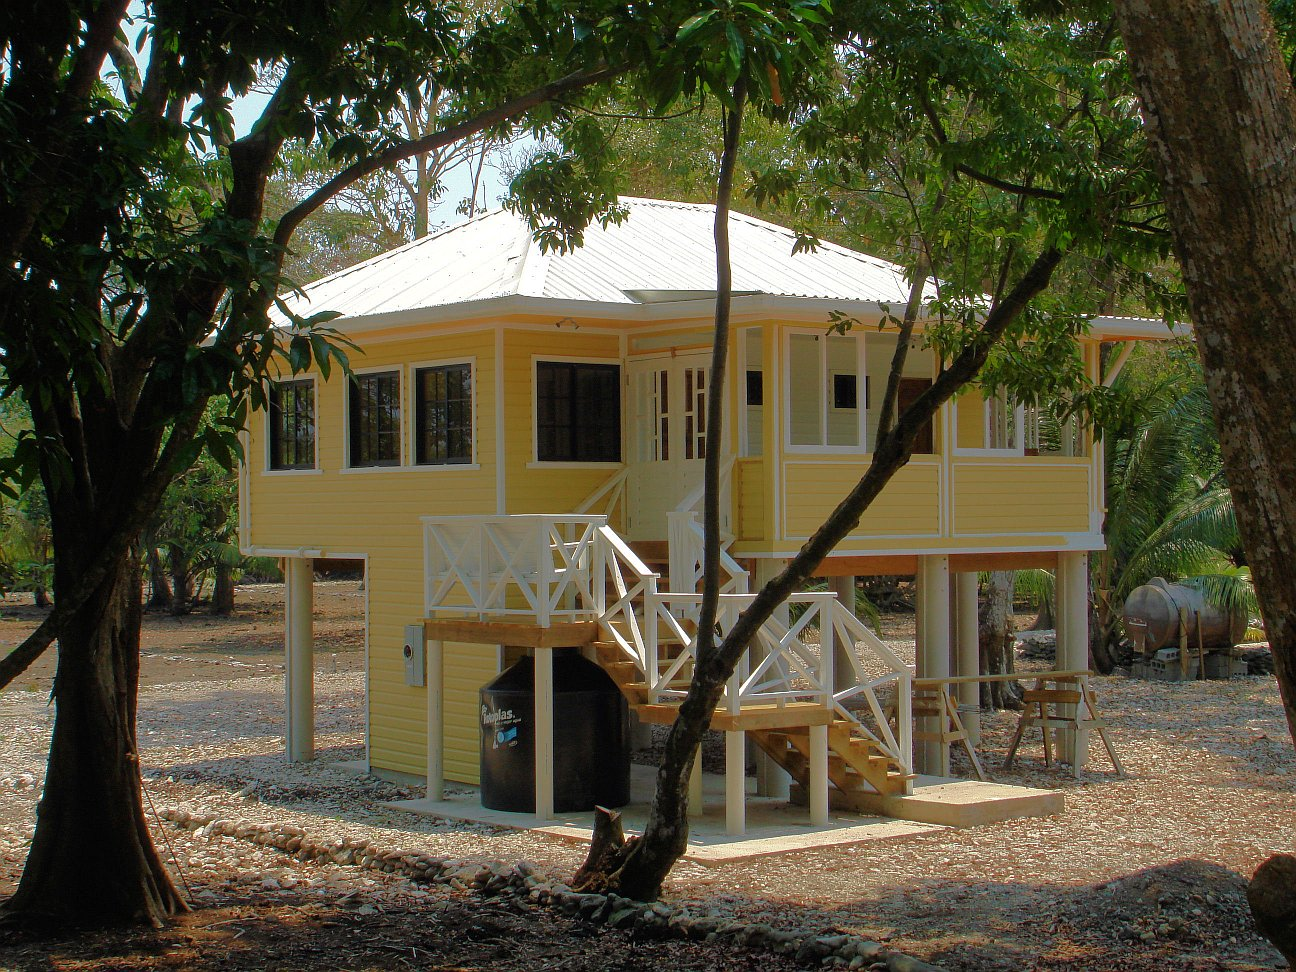 Charmant This Small Caribbean Beach House Has One Bedroom In 442 Sq Ft. | Www.